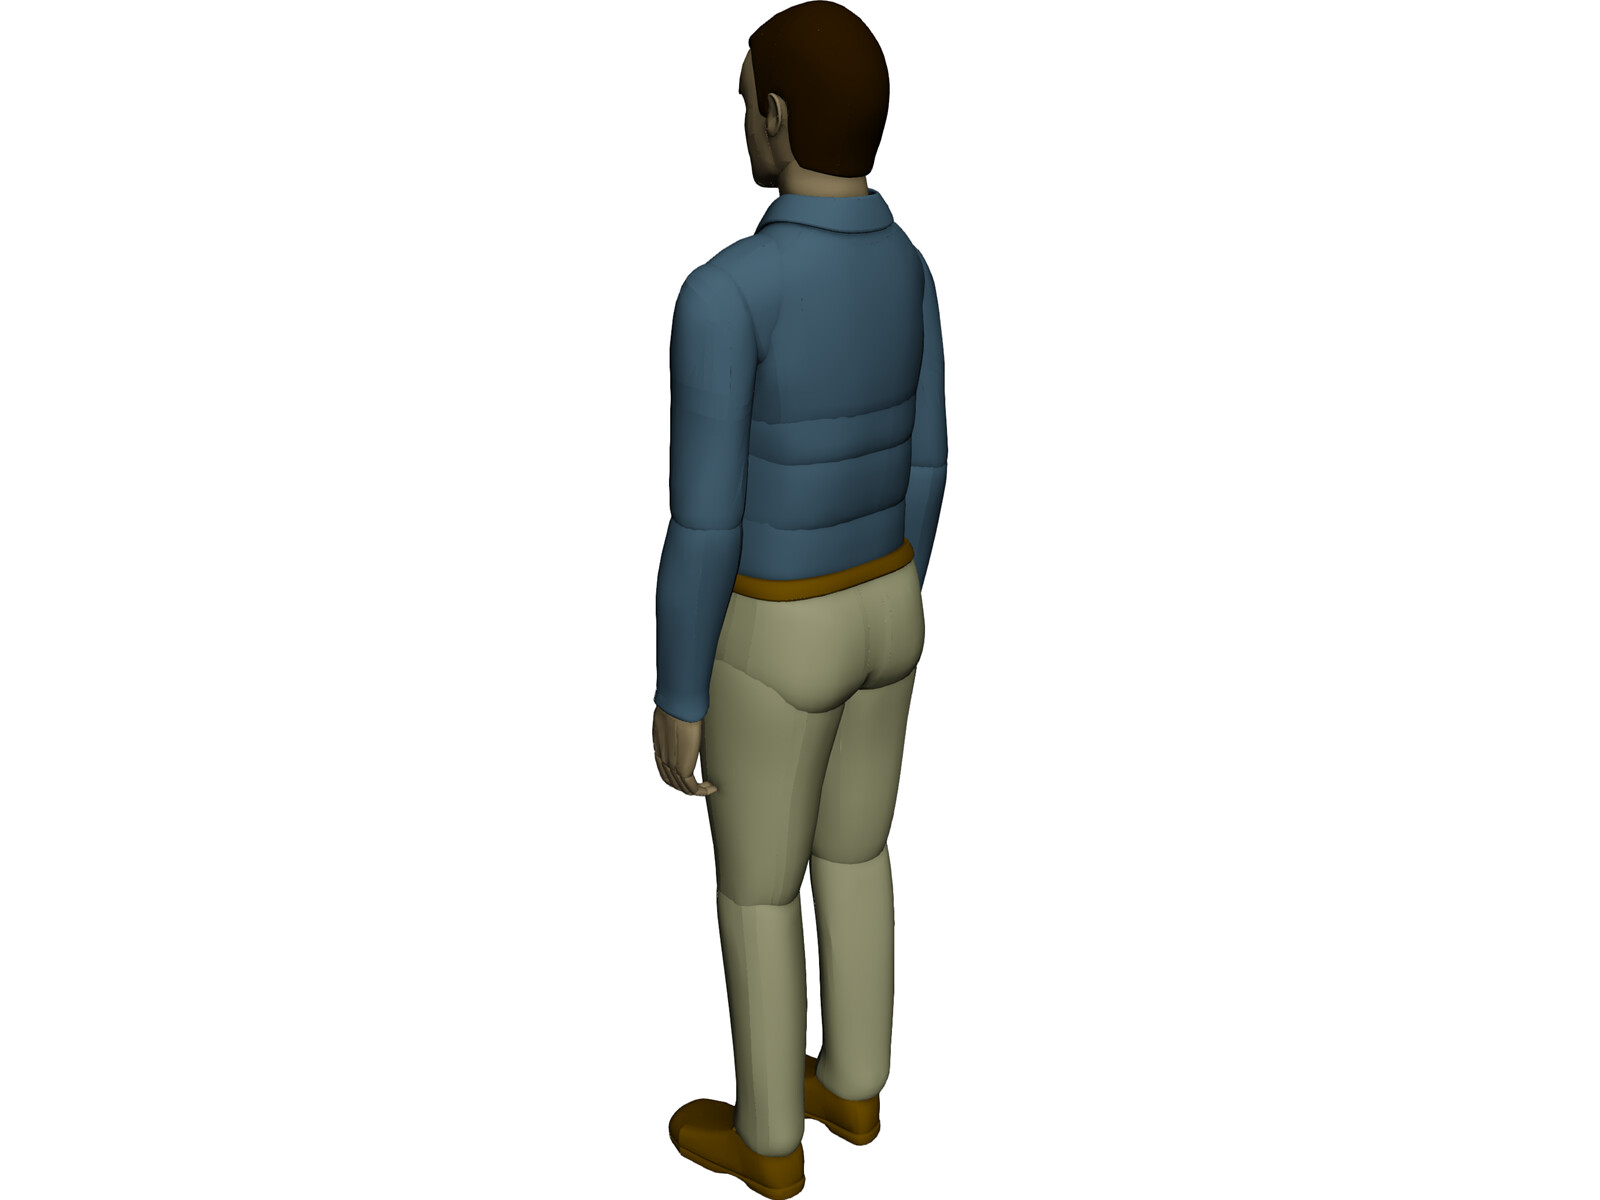 Working Man 3D CAD Model